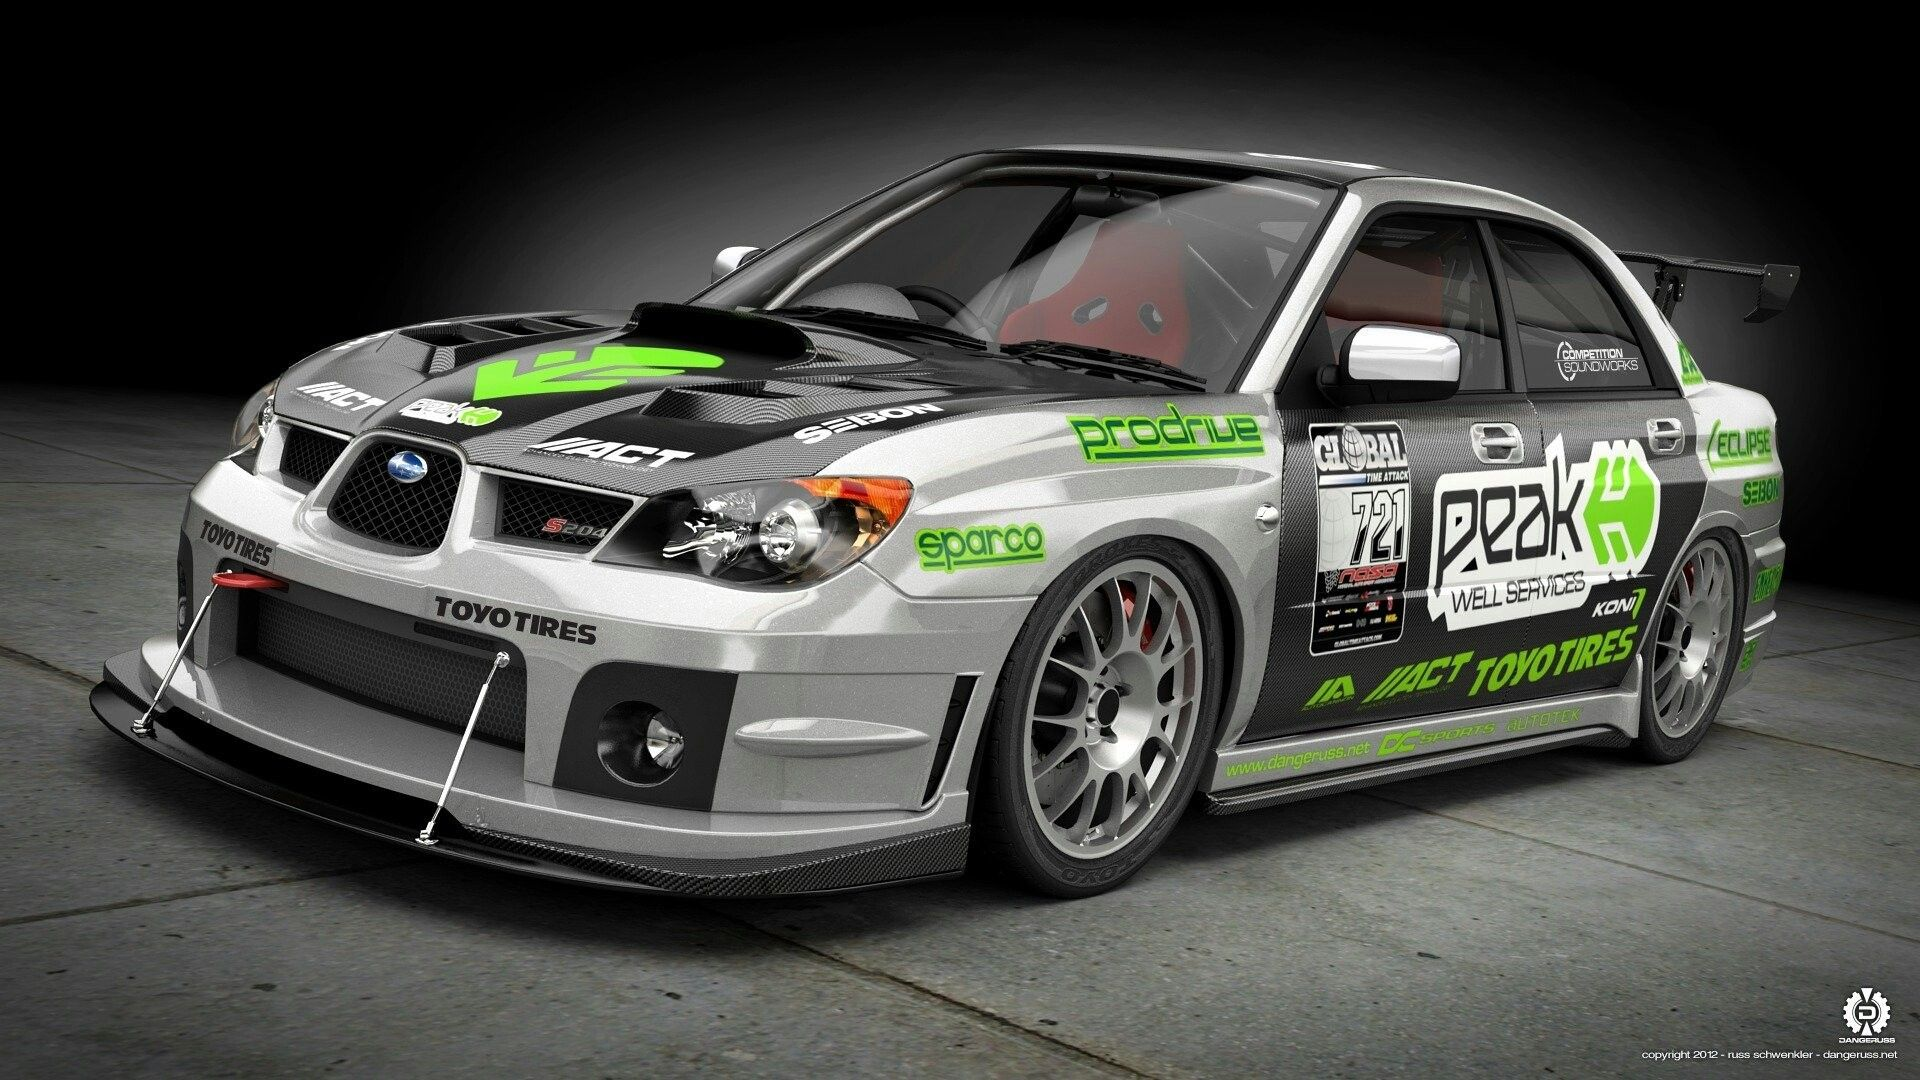 subaru impreza wrx sti front race car subaru impreza kit art HD ...